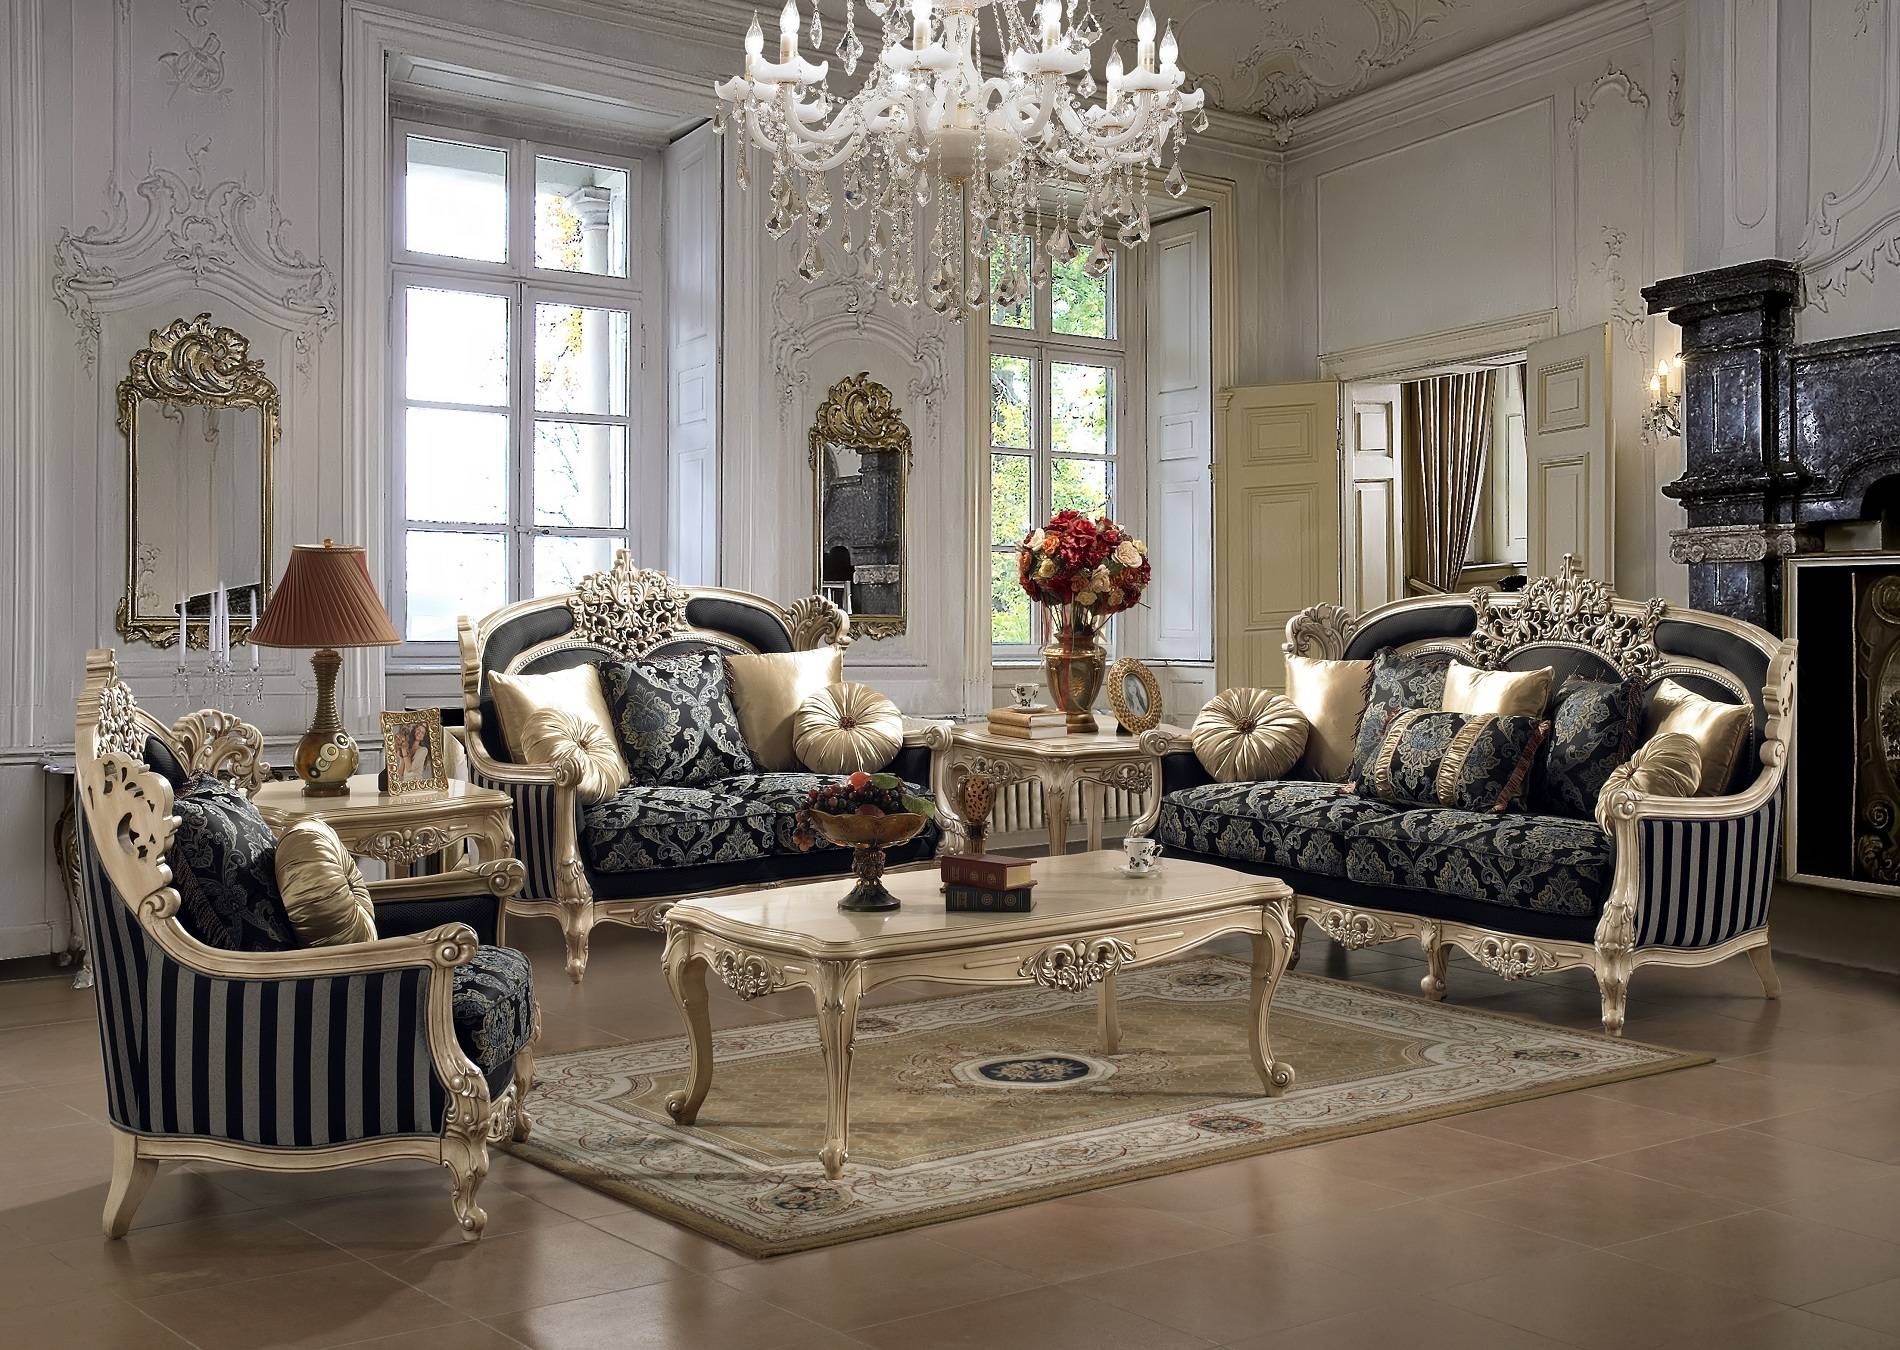 Elegant Sofa Set | Best Sofas Ideas - Sofascouch with Elegant Sofas and Chairs (Image 8 of 15)